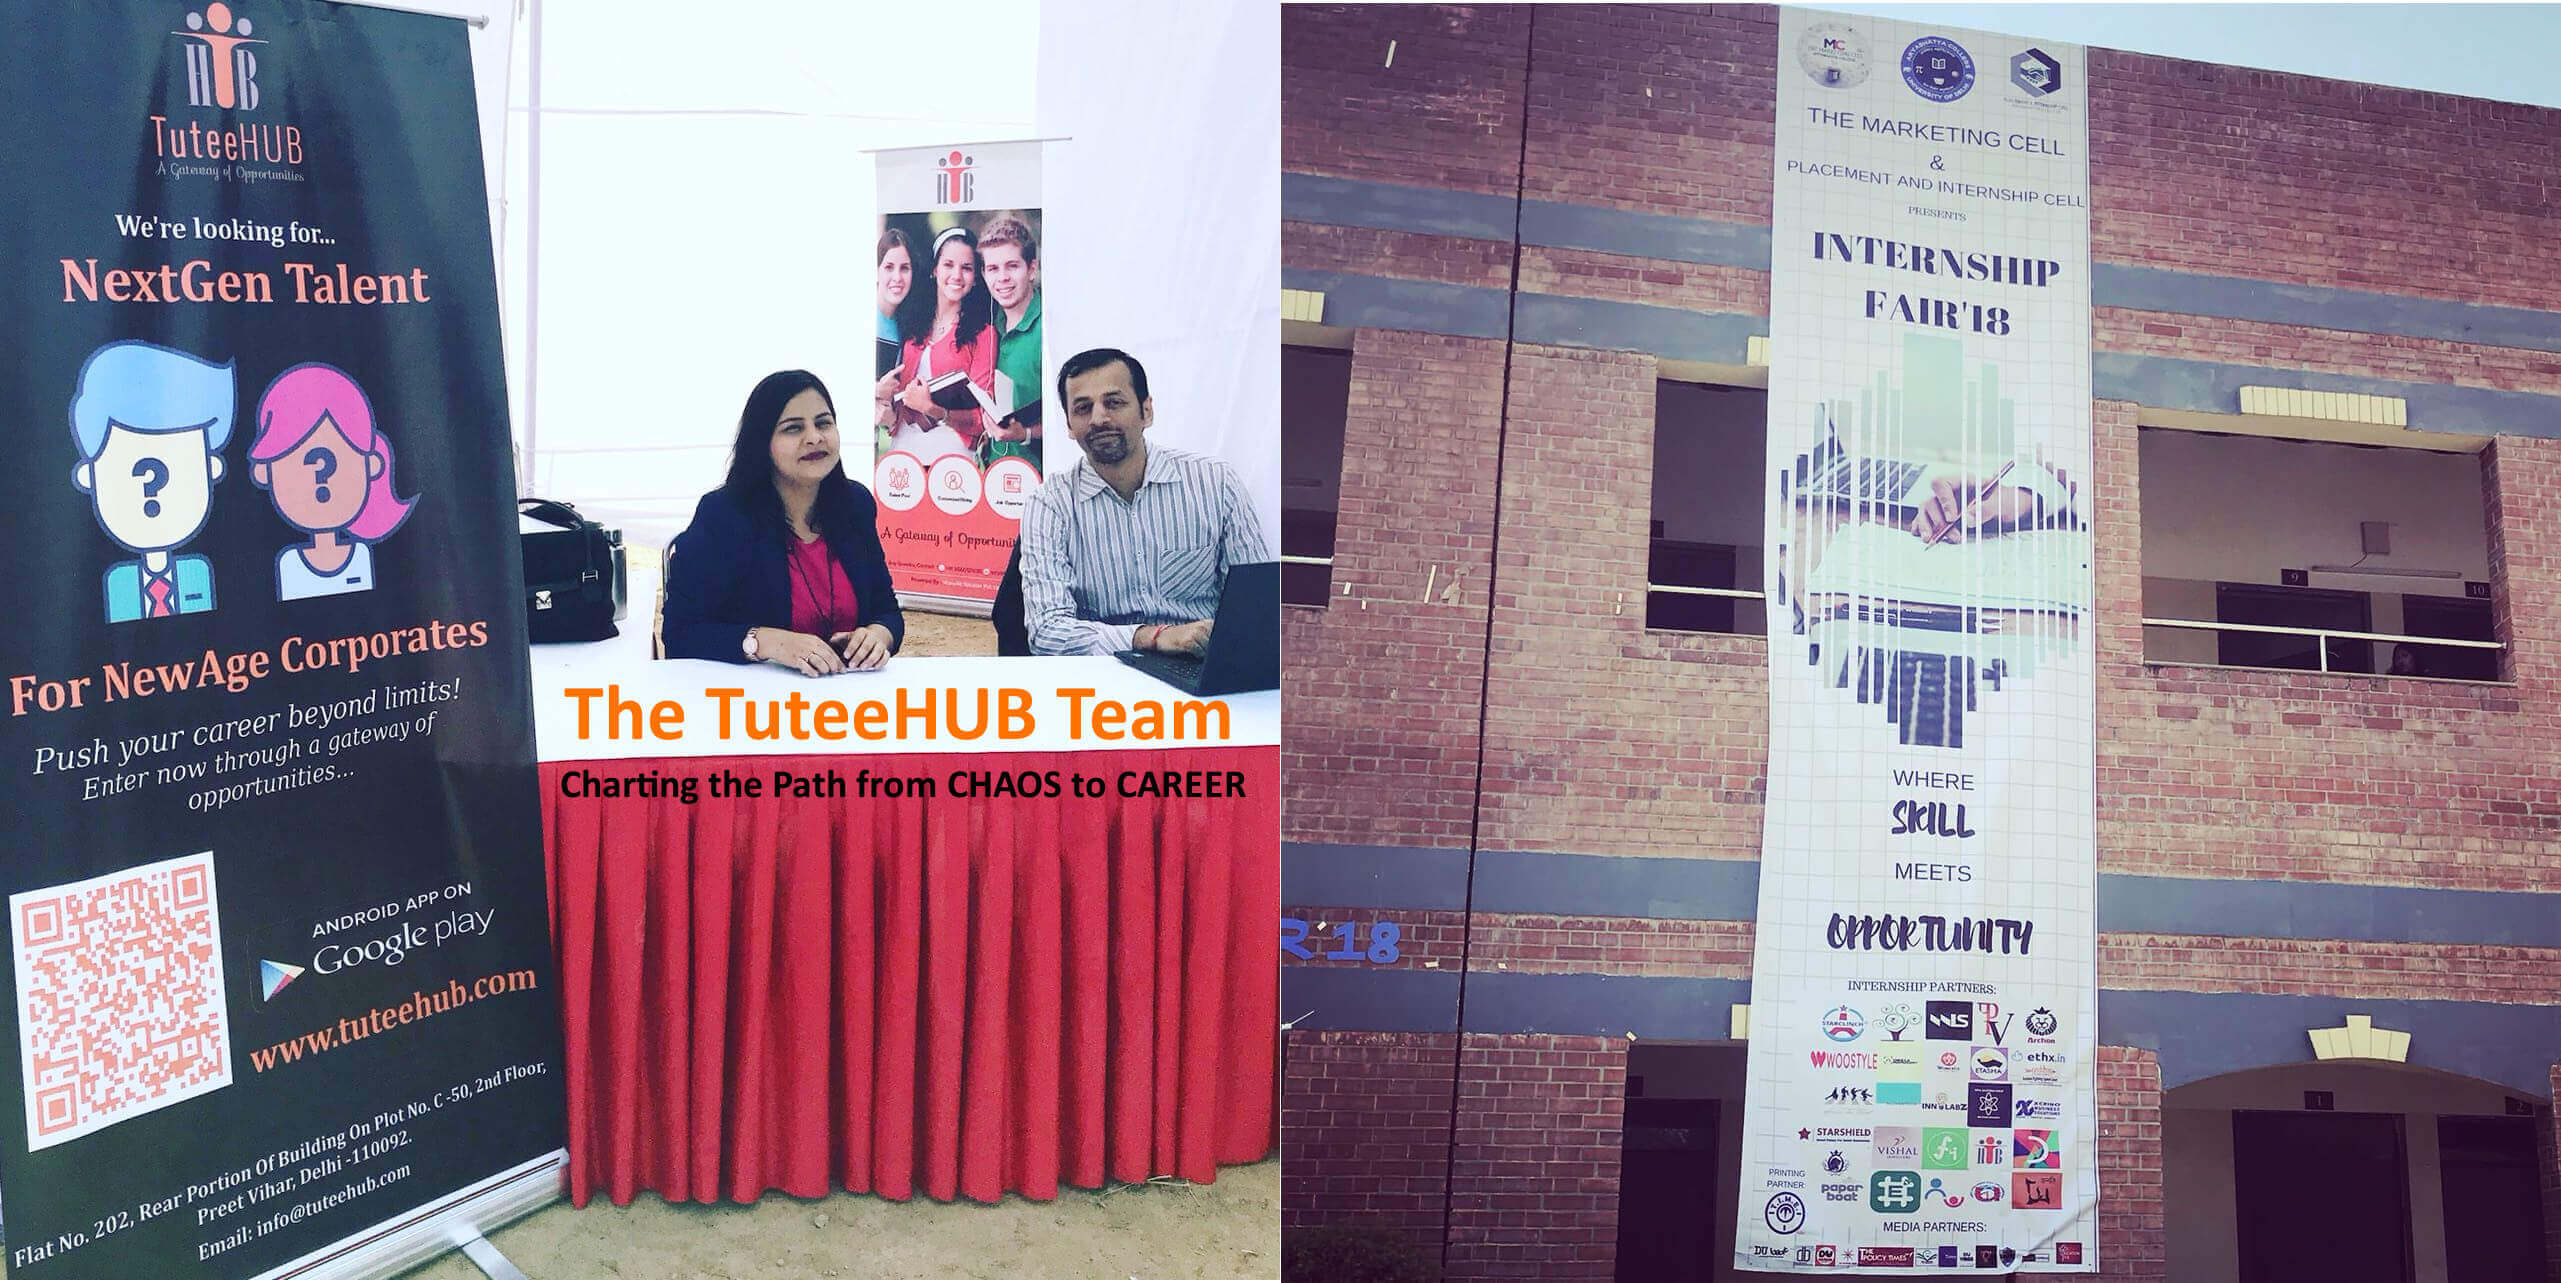 Feb 27th, 2018 Internship Fair' 18 at Aryabhatta College